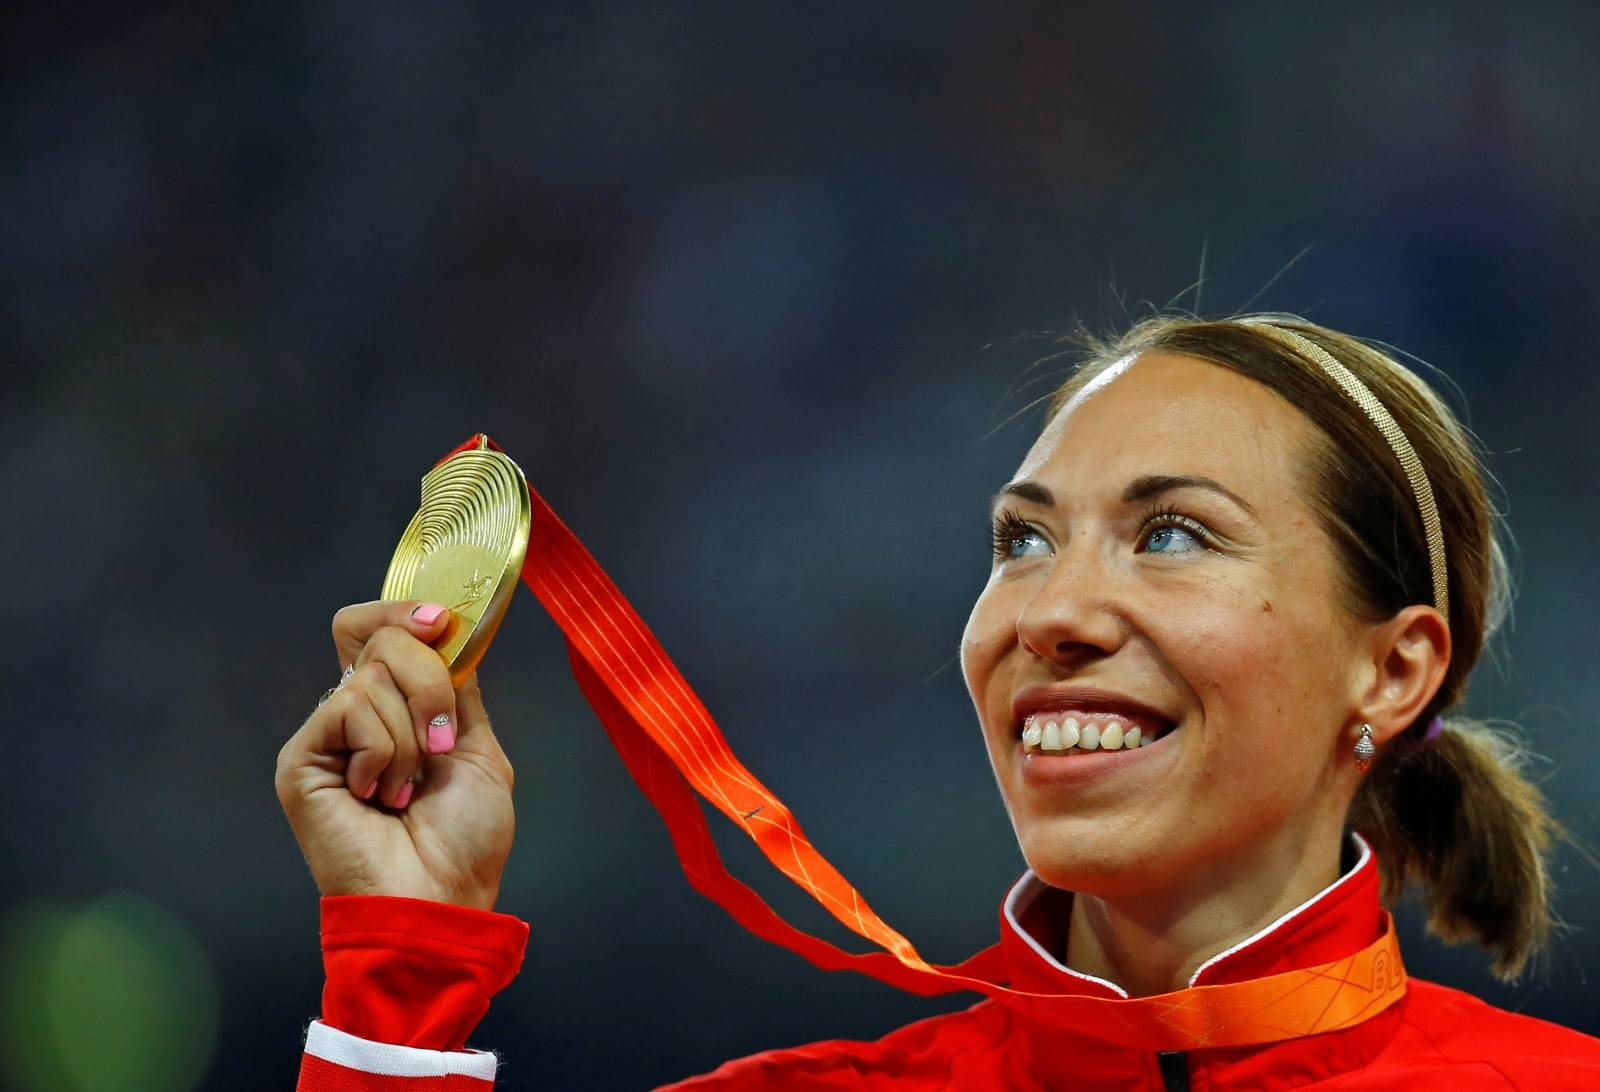 FILE PHOTO: Marina Arzamasova of Belarus holds up her gold medal as she poses on the podium after the women's 800m event during the during the 15th IAAF World Championships at the National Stadium in Beijing